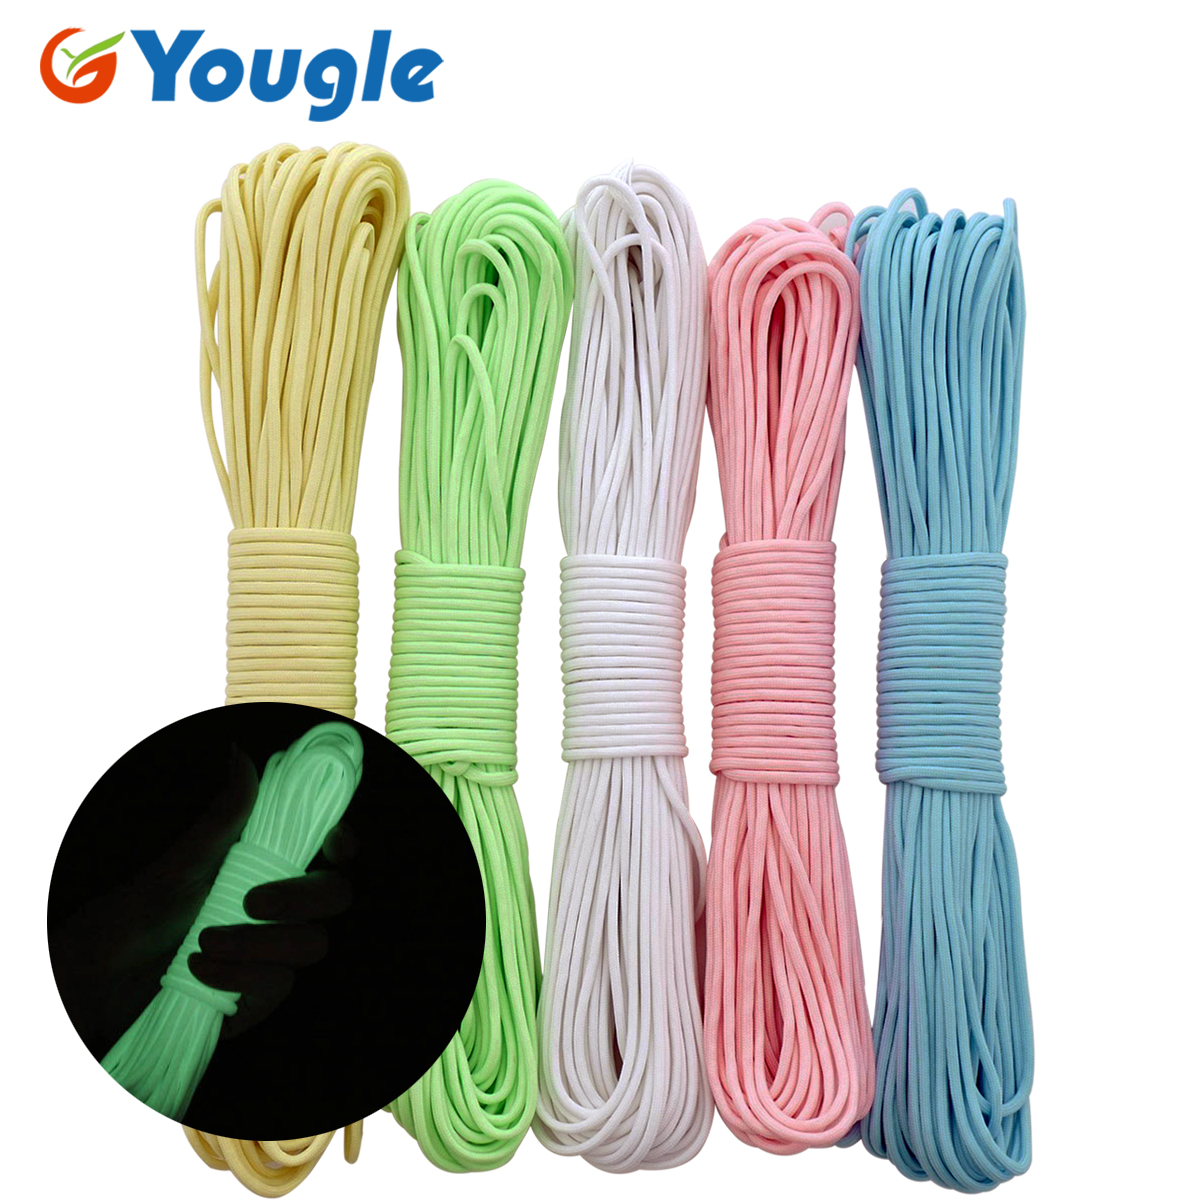 Yougle 9 Strands Cores Luminous Glow In The Dark & Reflective Paracord Parachute Cord Lanyard 25 50 100 Feet